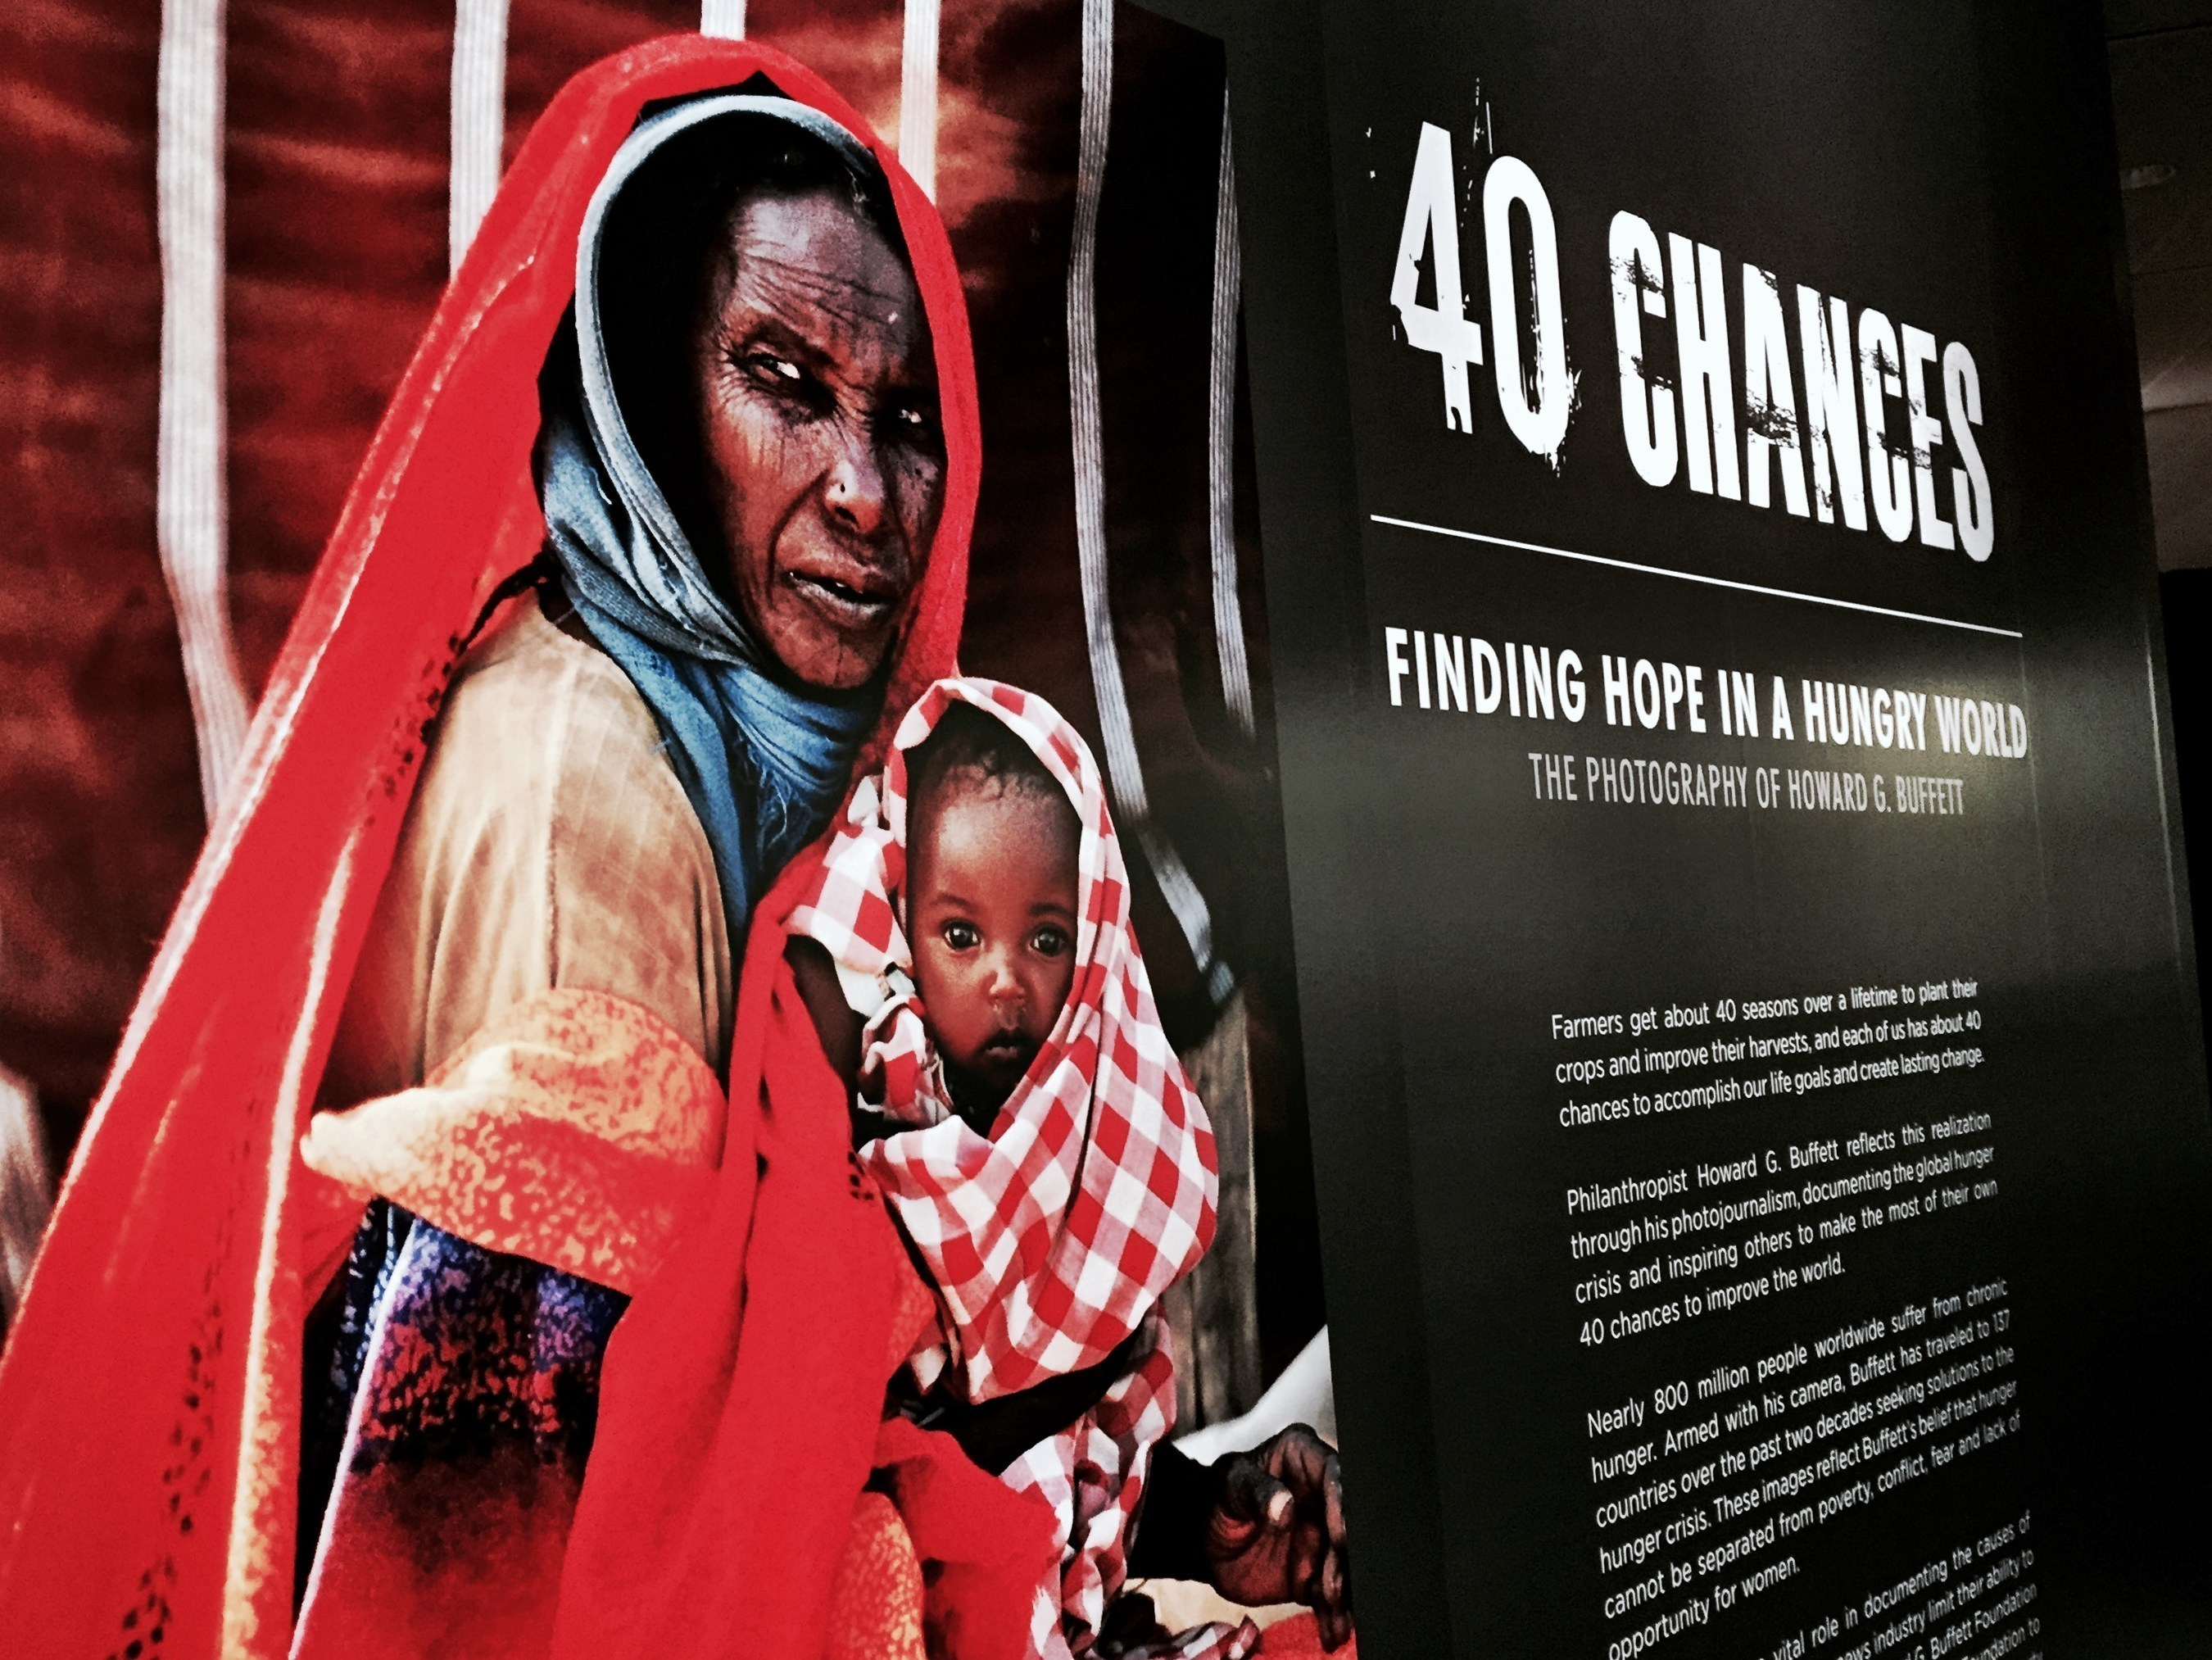 '40 Chances: Finding Hope in a Hungry World -- The Photography of Howard G. Buffett' Opens at the Newseum Today